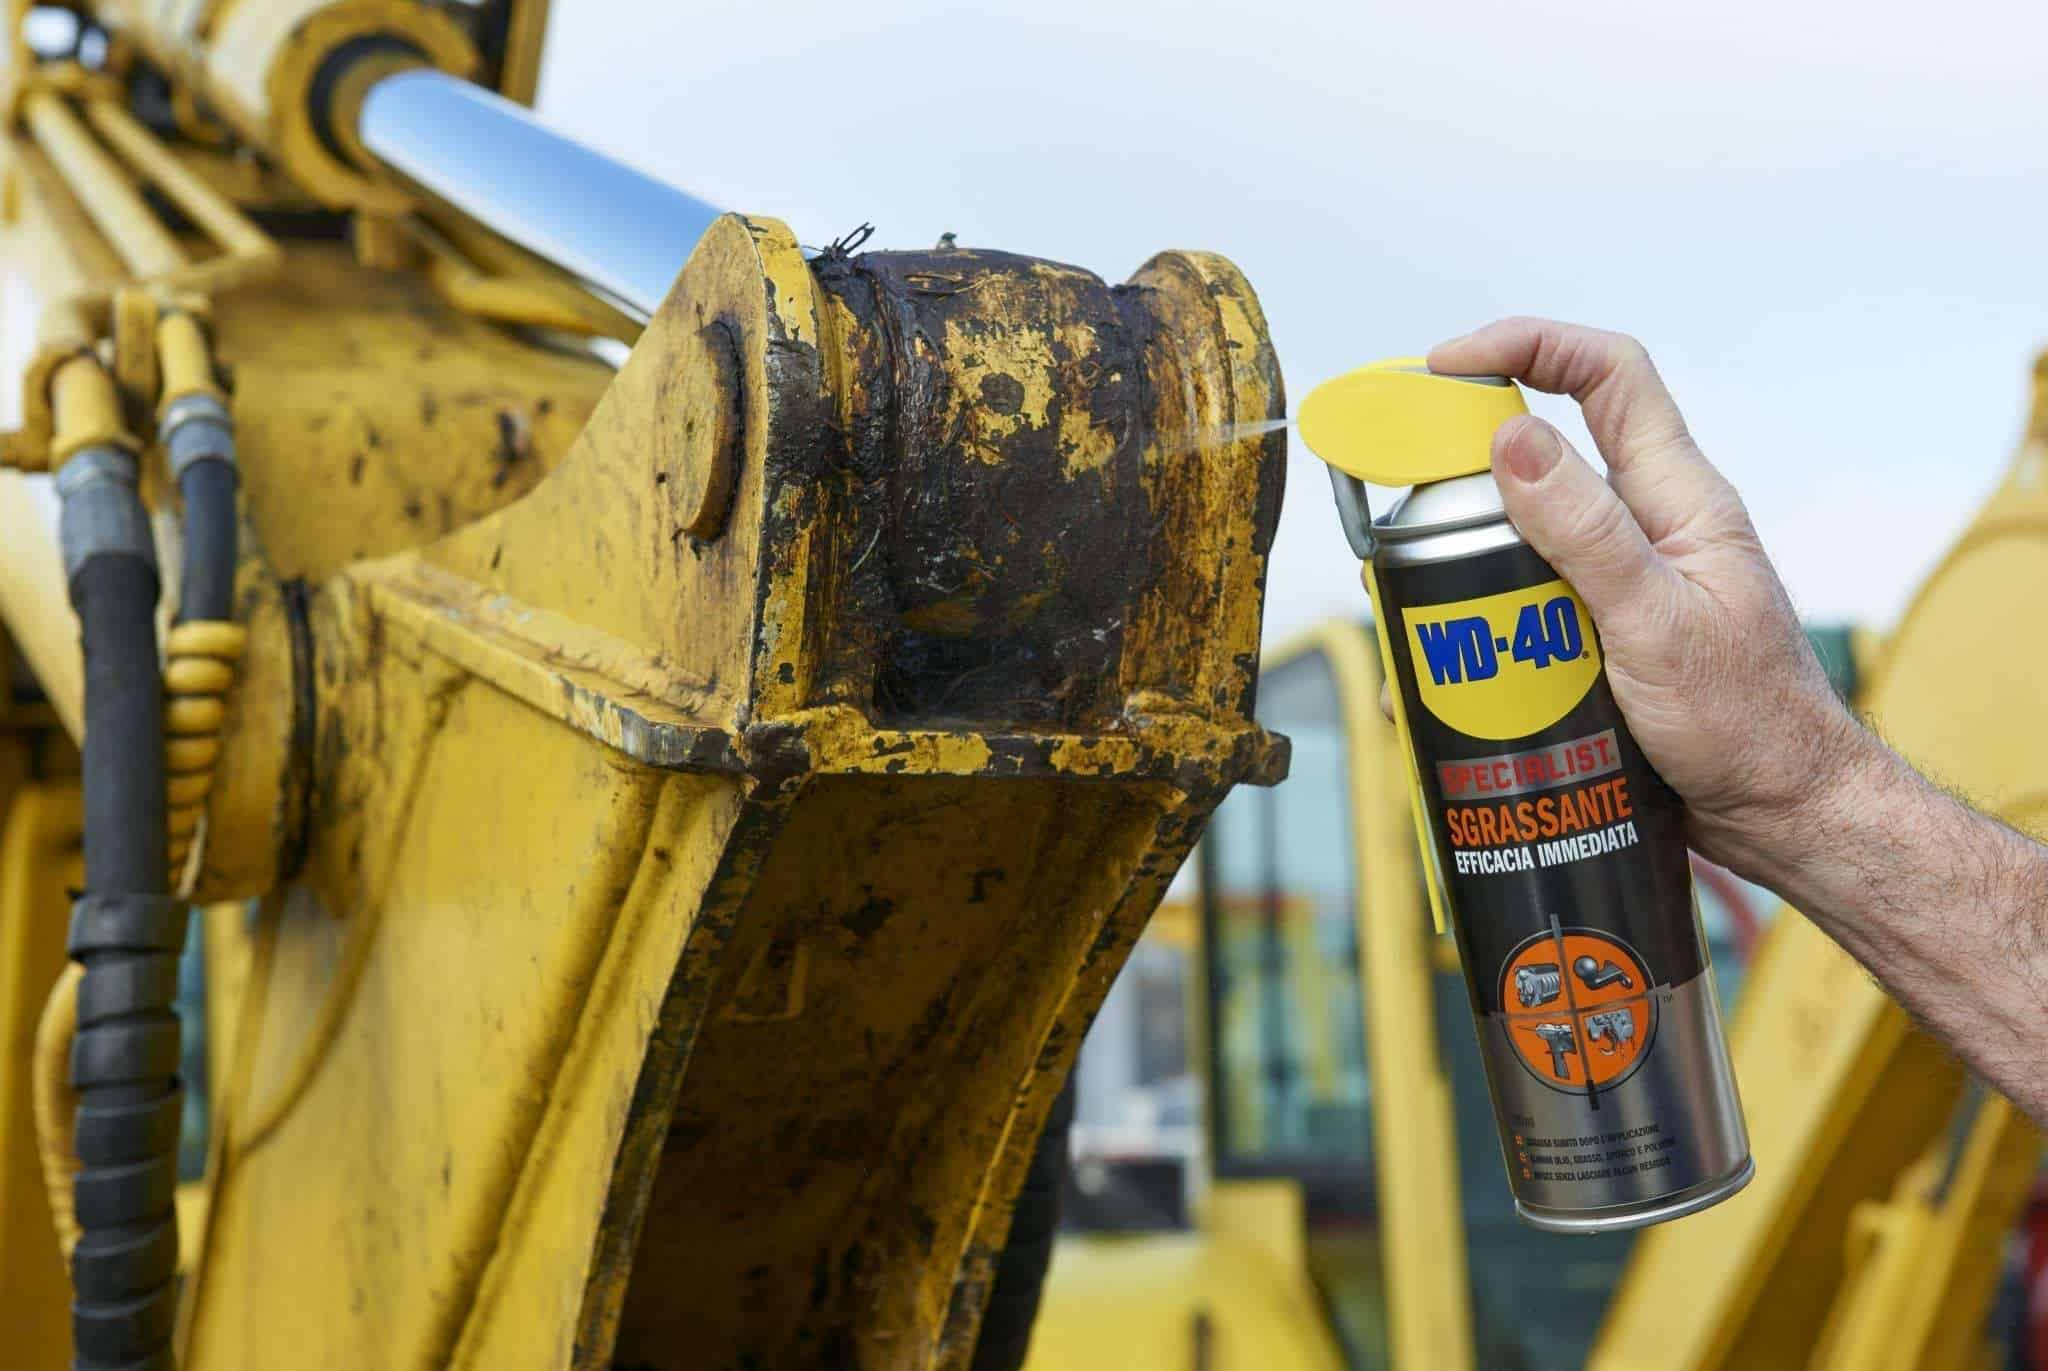 WD-40-machine-reinigen-super-degraissant